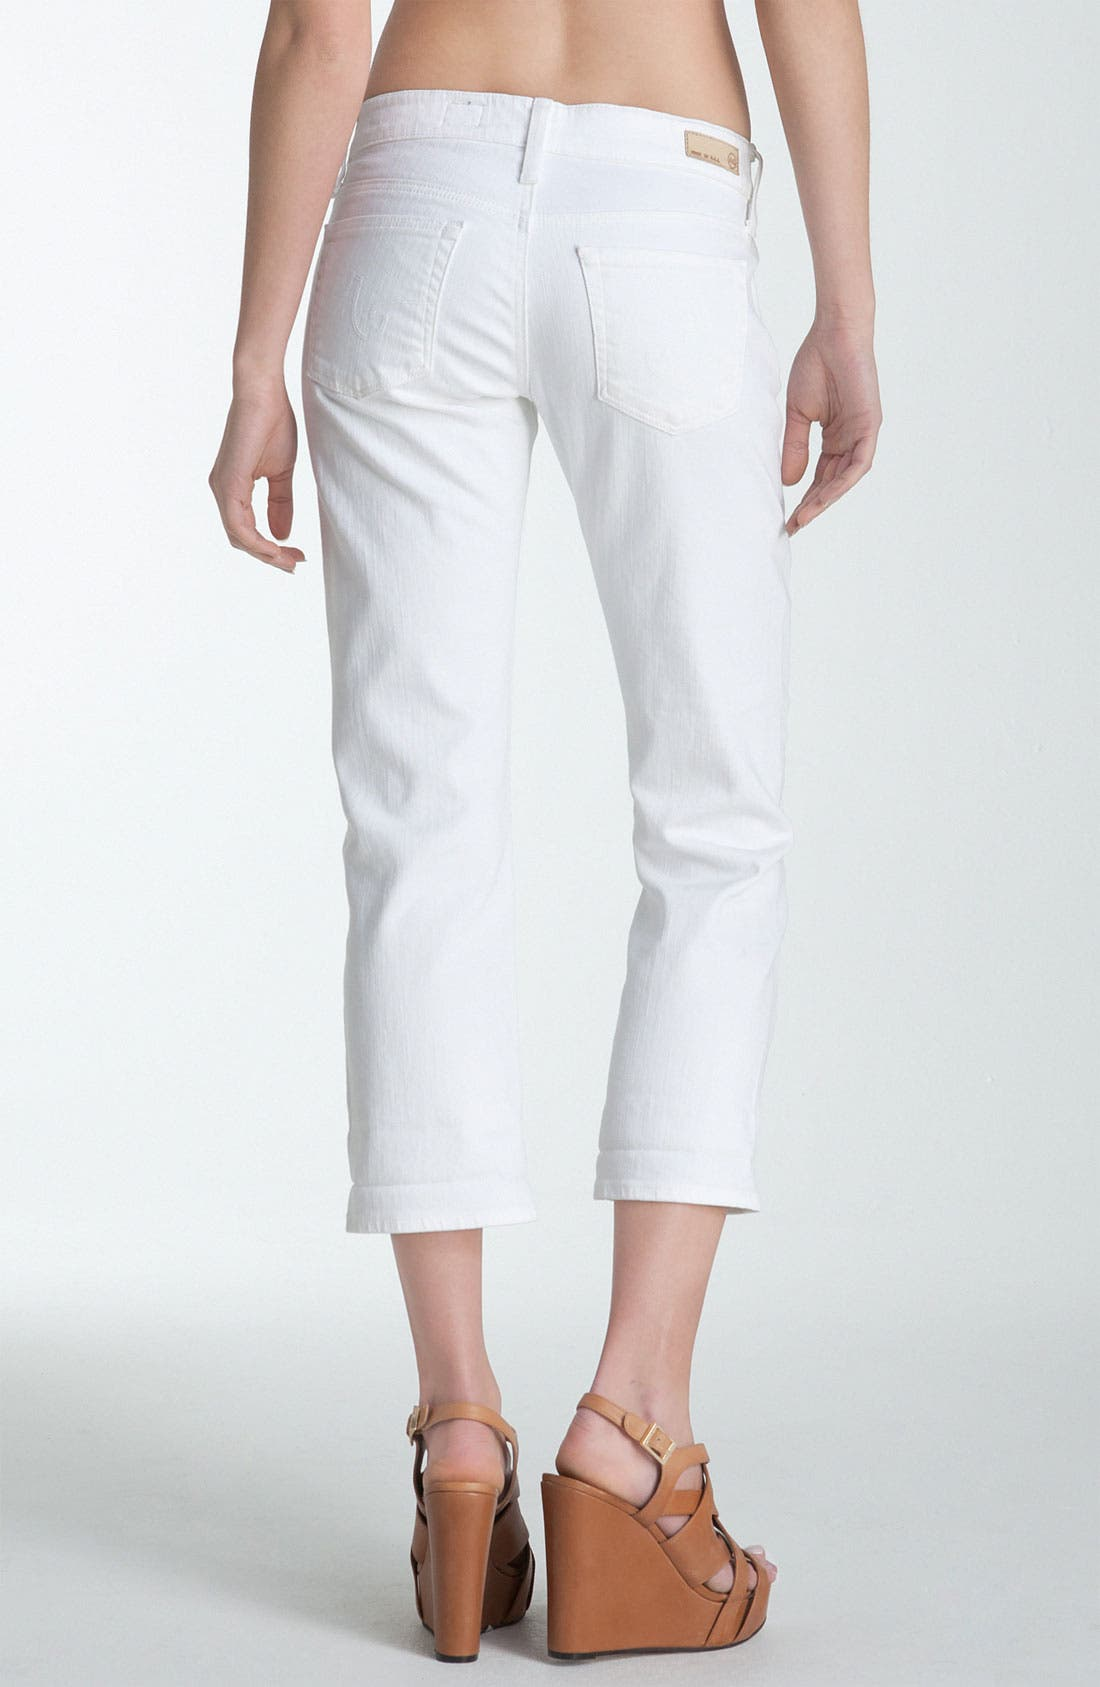 Alternate Image 1 Selected - AG Jeans 'Tomboy' Crop Jeans (White)